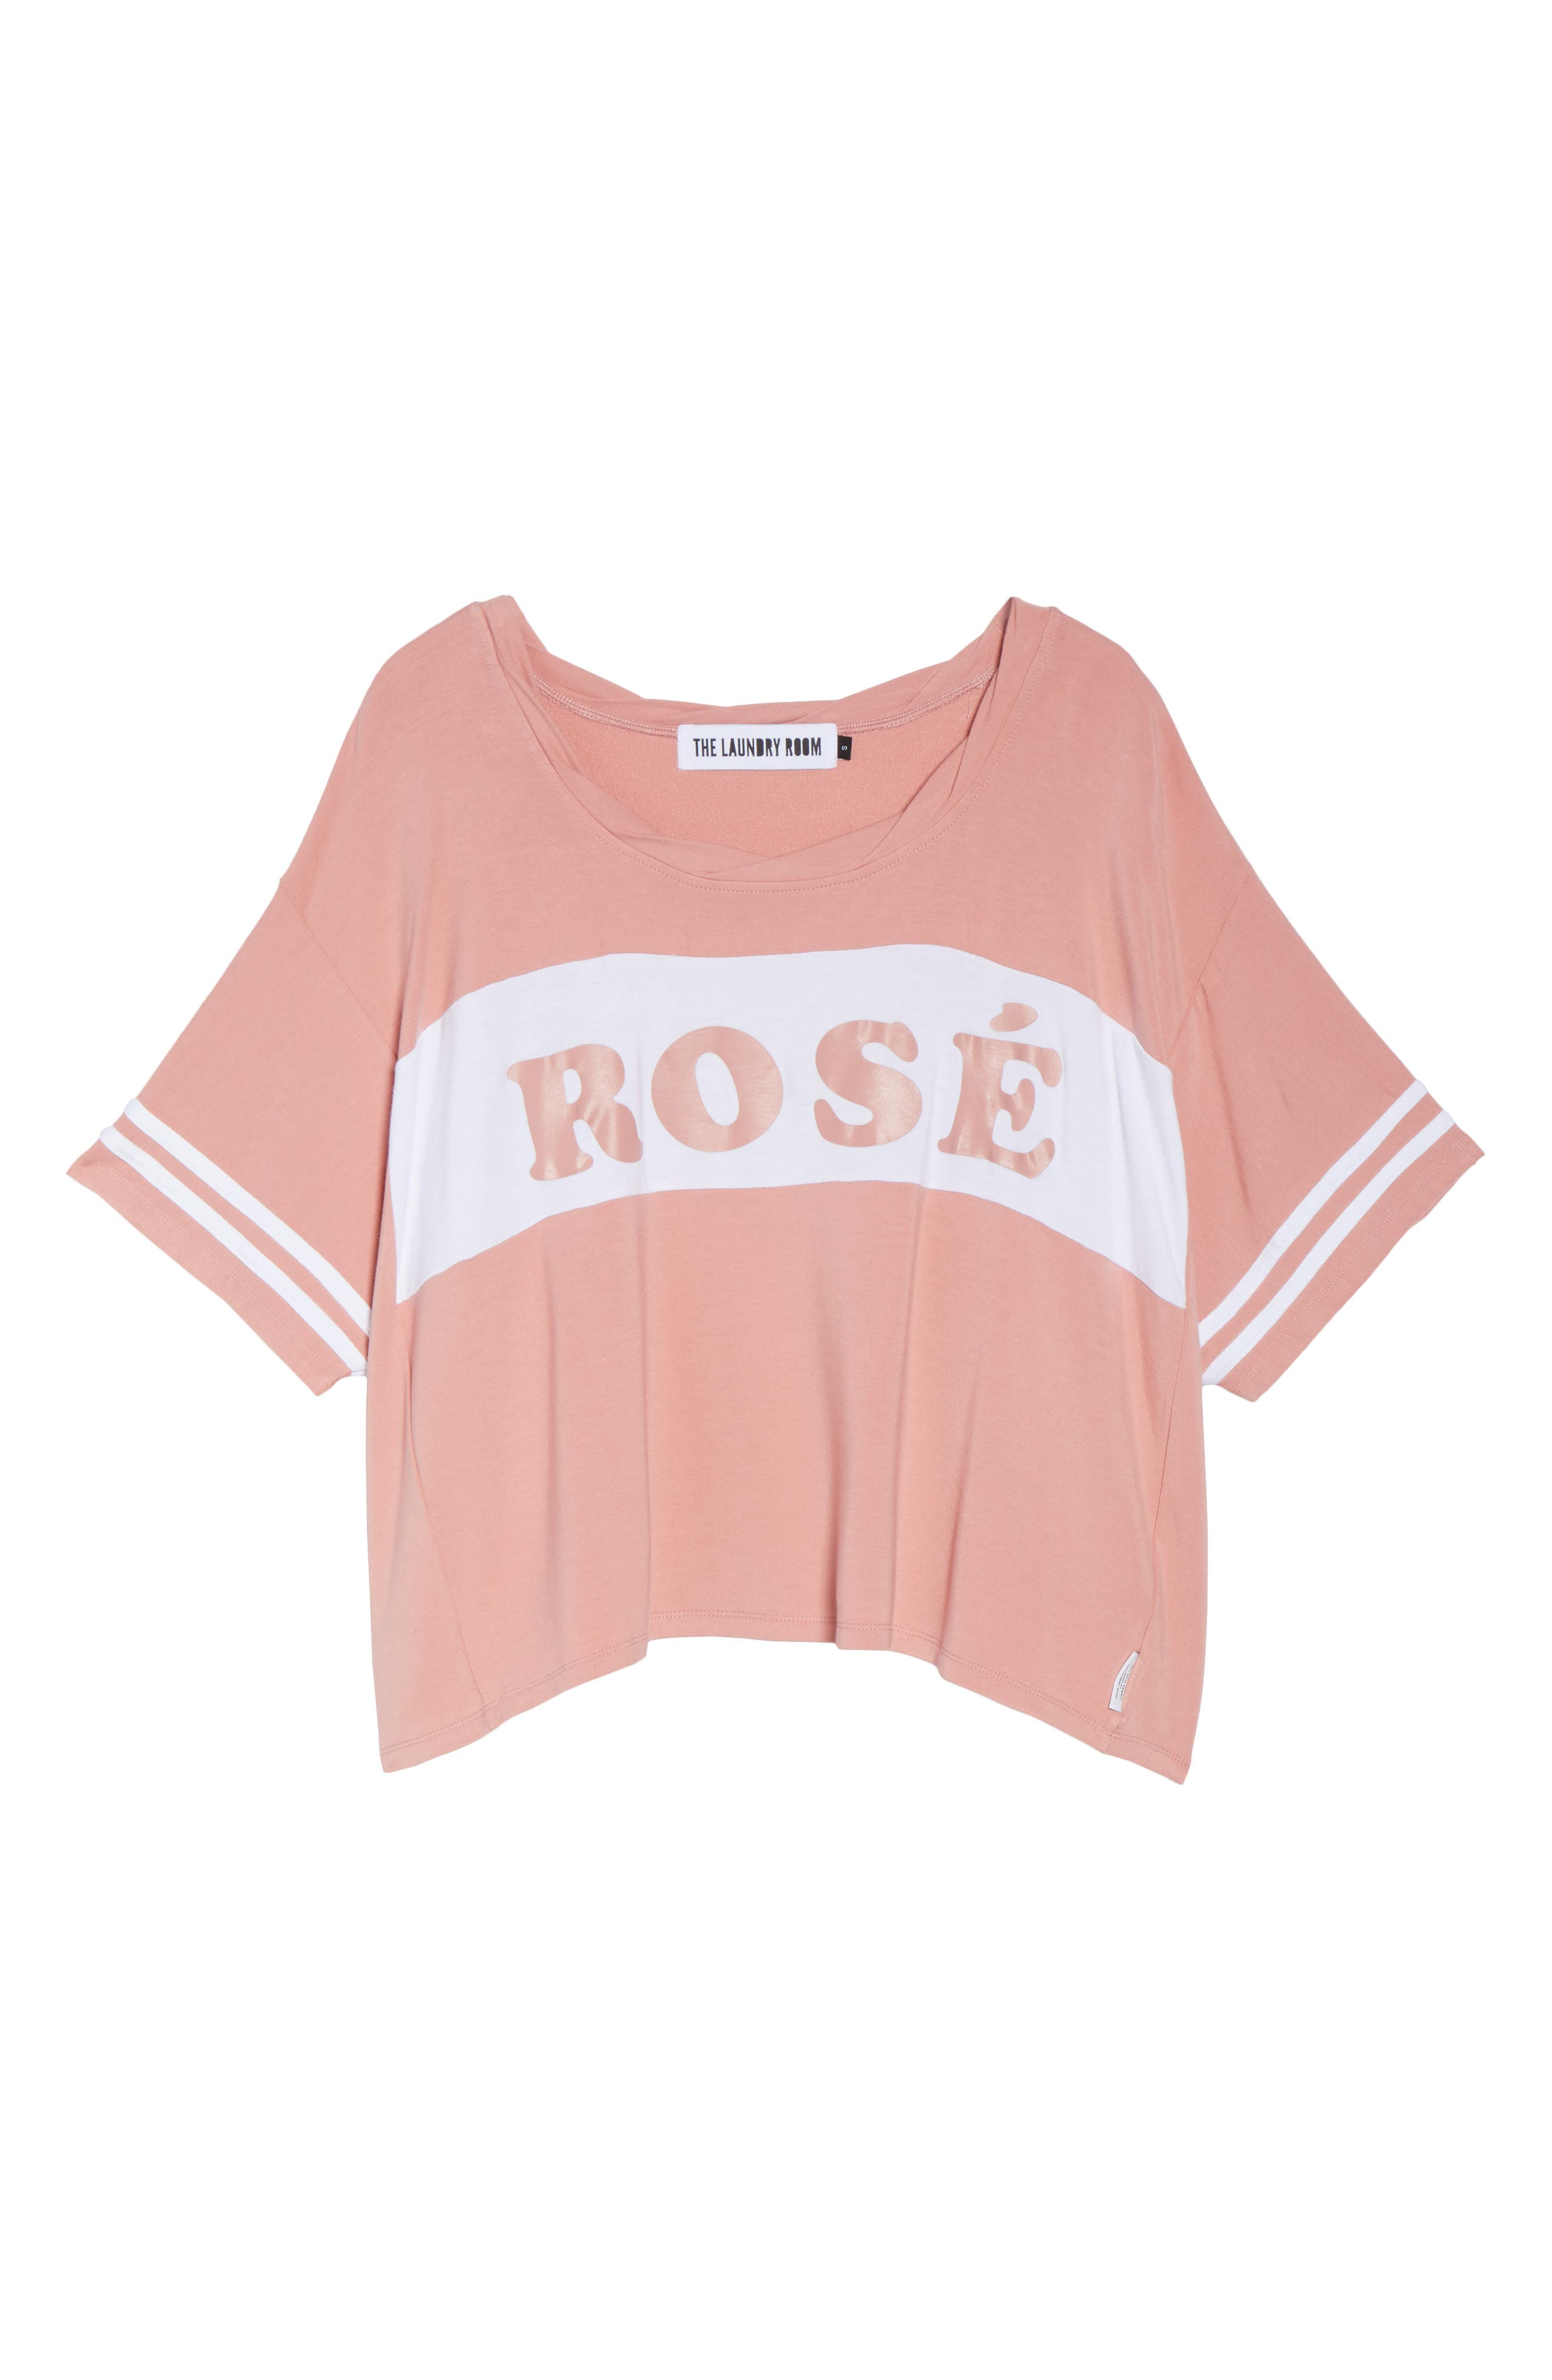 Team Rosé Baggy Tee,                             Alternate thumbnail 4, color,                             White / Champagne